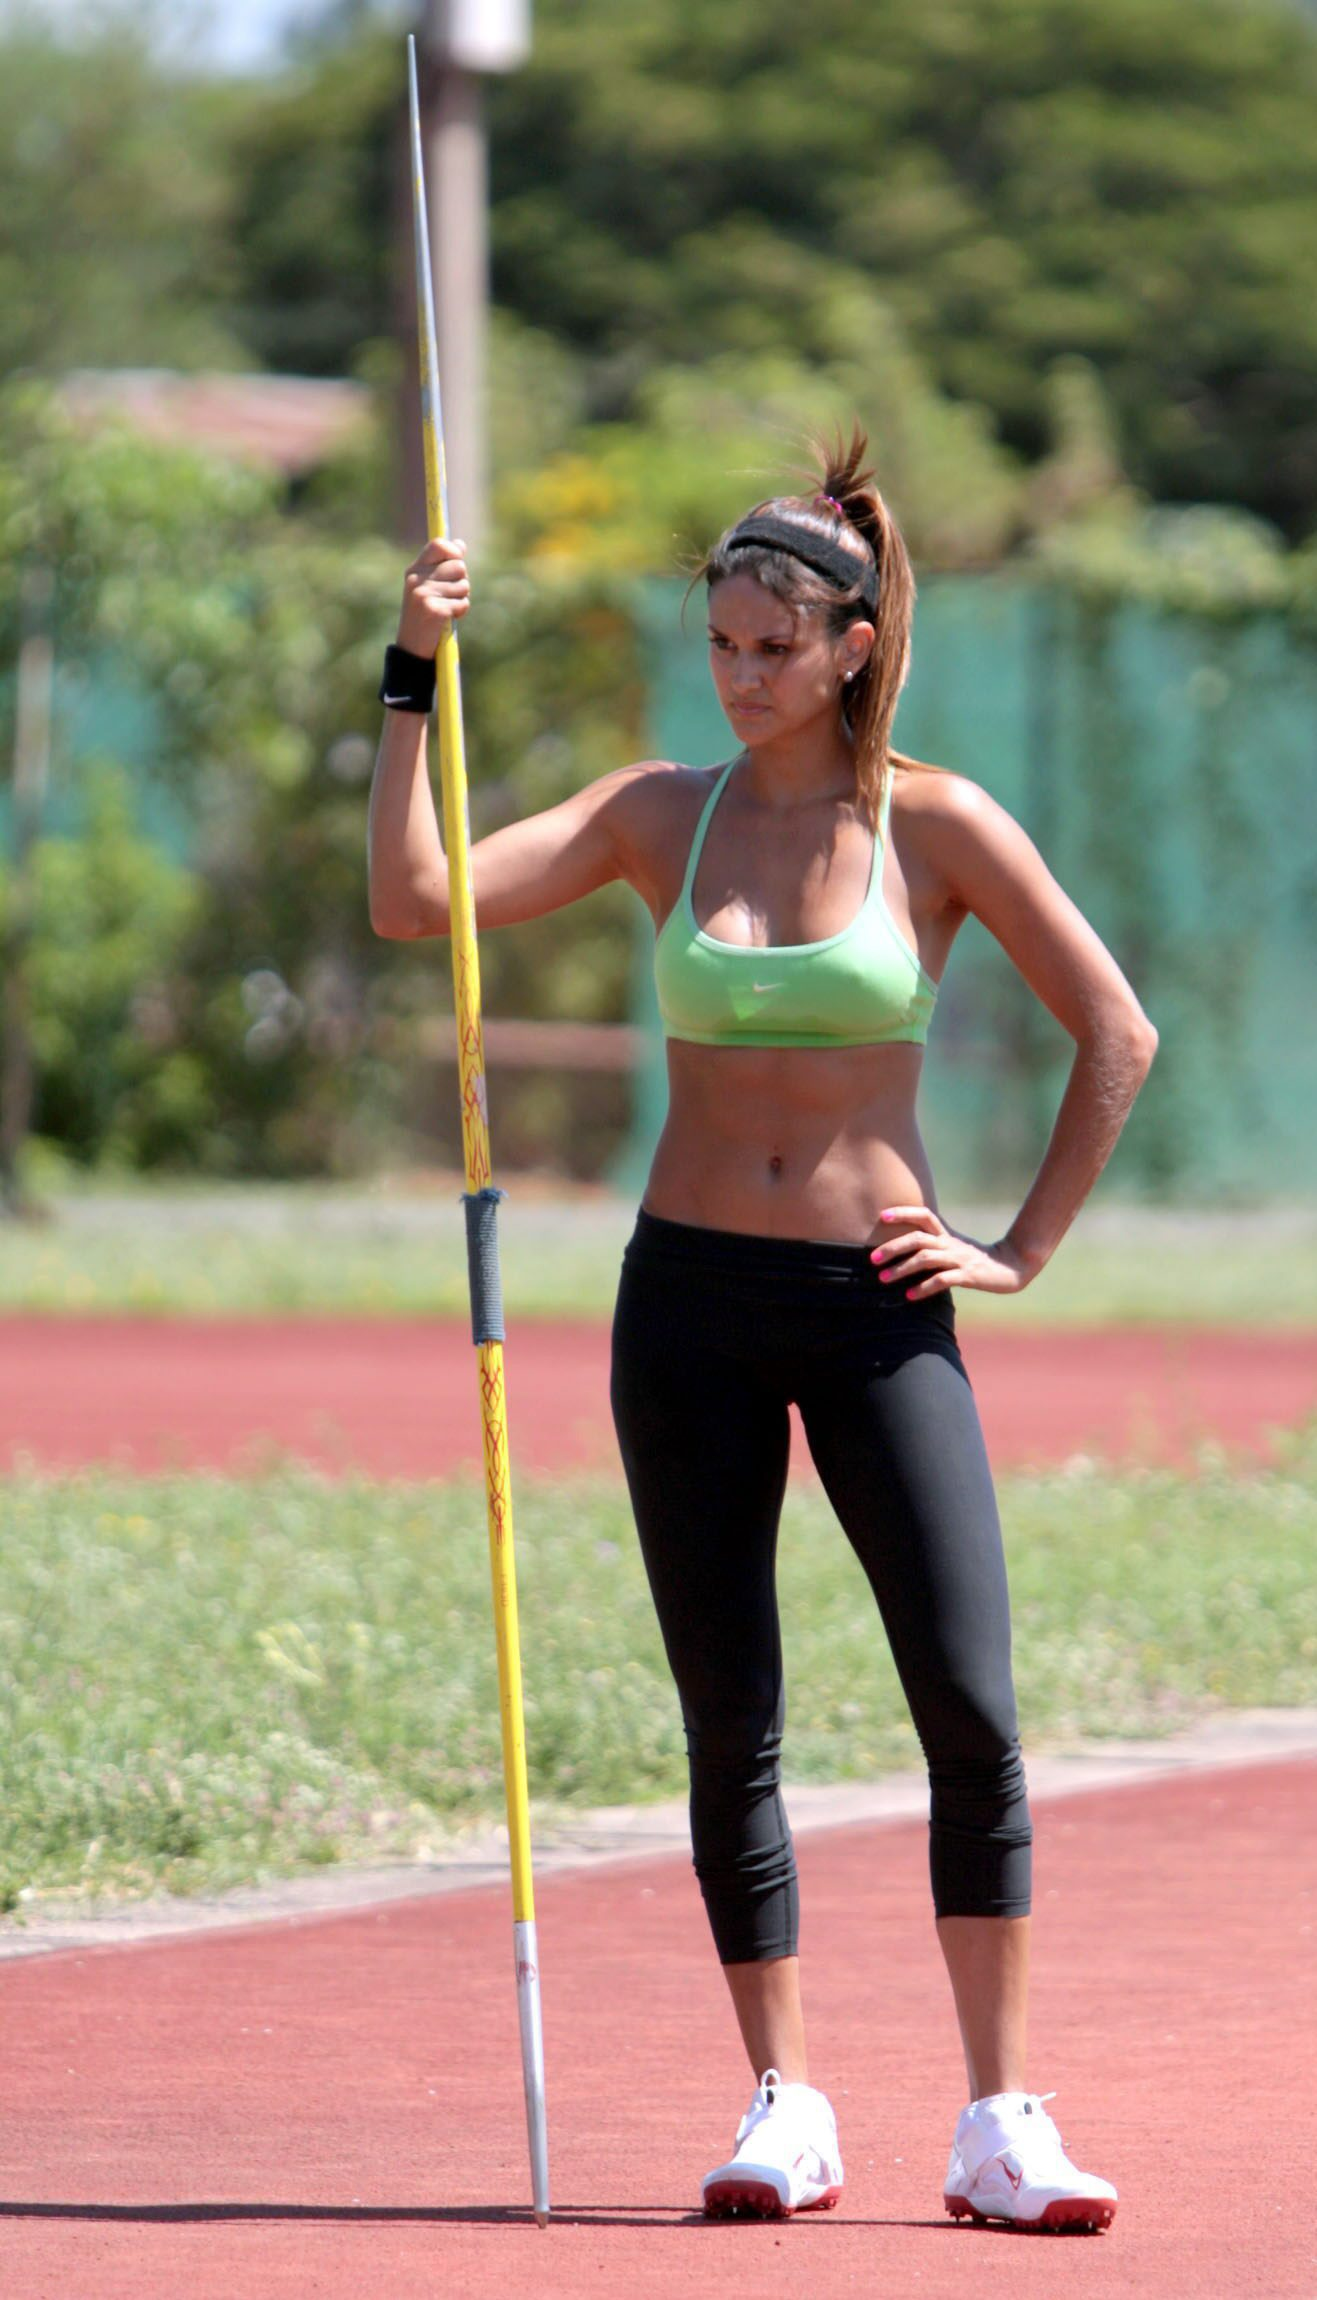 Leryn franco looking hot at training session ascencion paraguay leryn franco looking hot at training session ascencion paraguay gotceleb altavistaventures Images